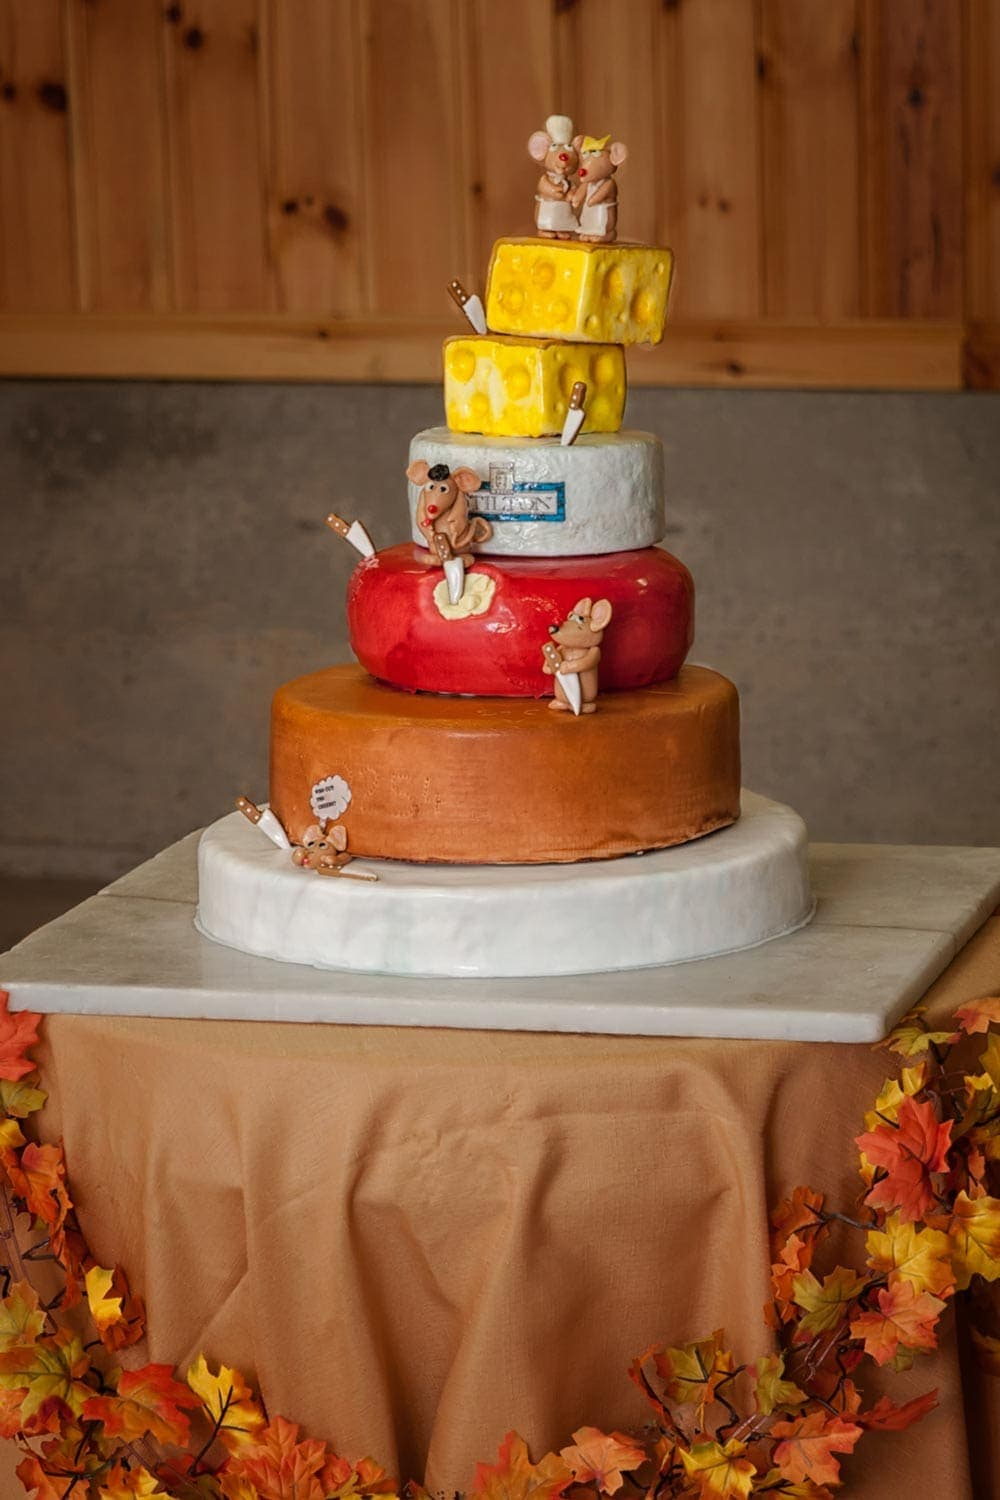 A 5 tier cheesecake themed wedding cake with mice on each level.